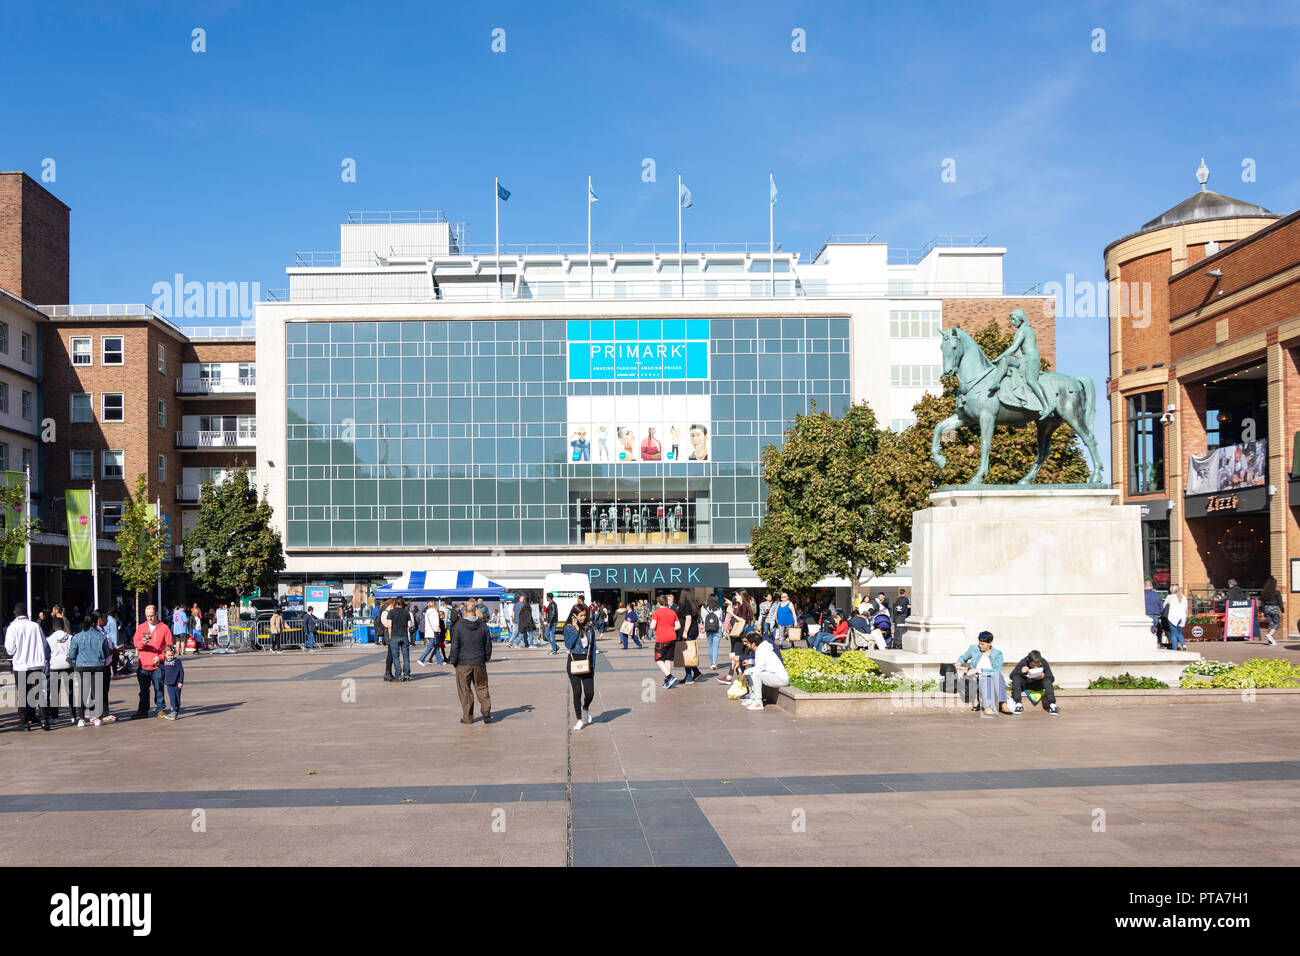 Pedestrianised Broadgate Plaza showing Primark fashion store and  Lady Godiva statue, Coventry, West Midlands, England, United Kingdom - Stock Image